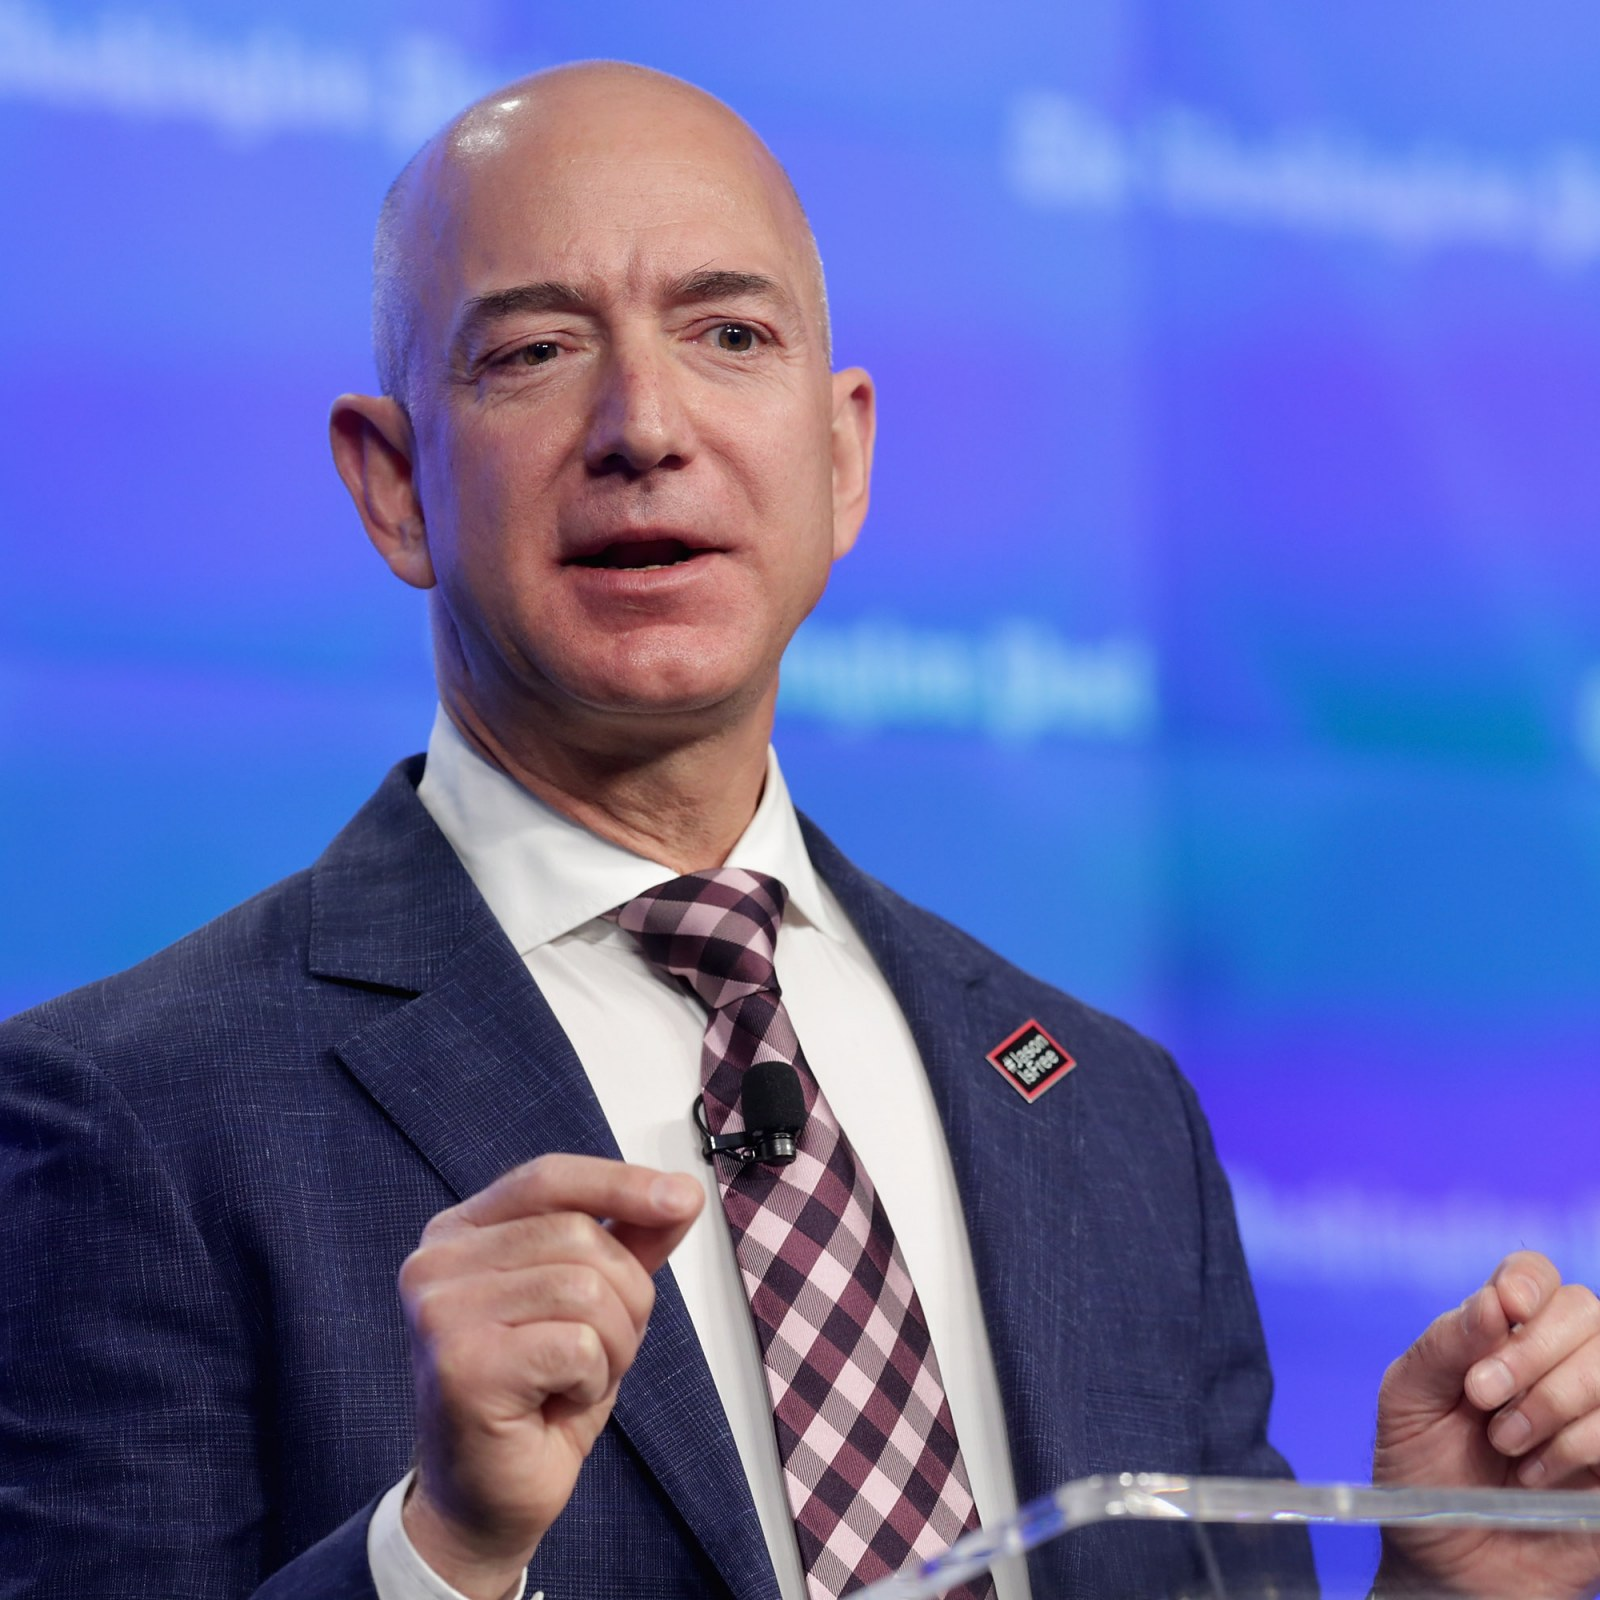 Petitions to Keep Jeff Bezos in Space After Blue Origins Launch Exceed  100,000 Signatures